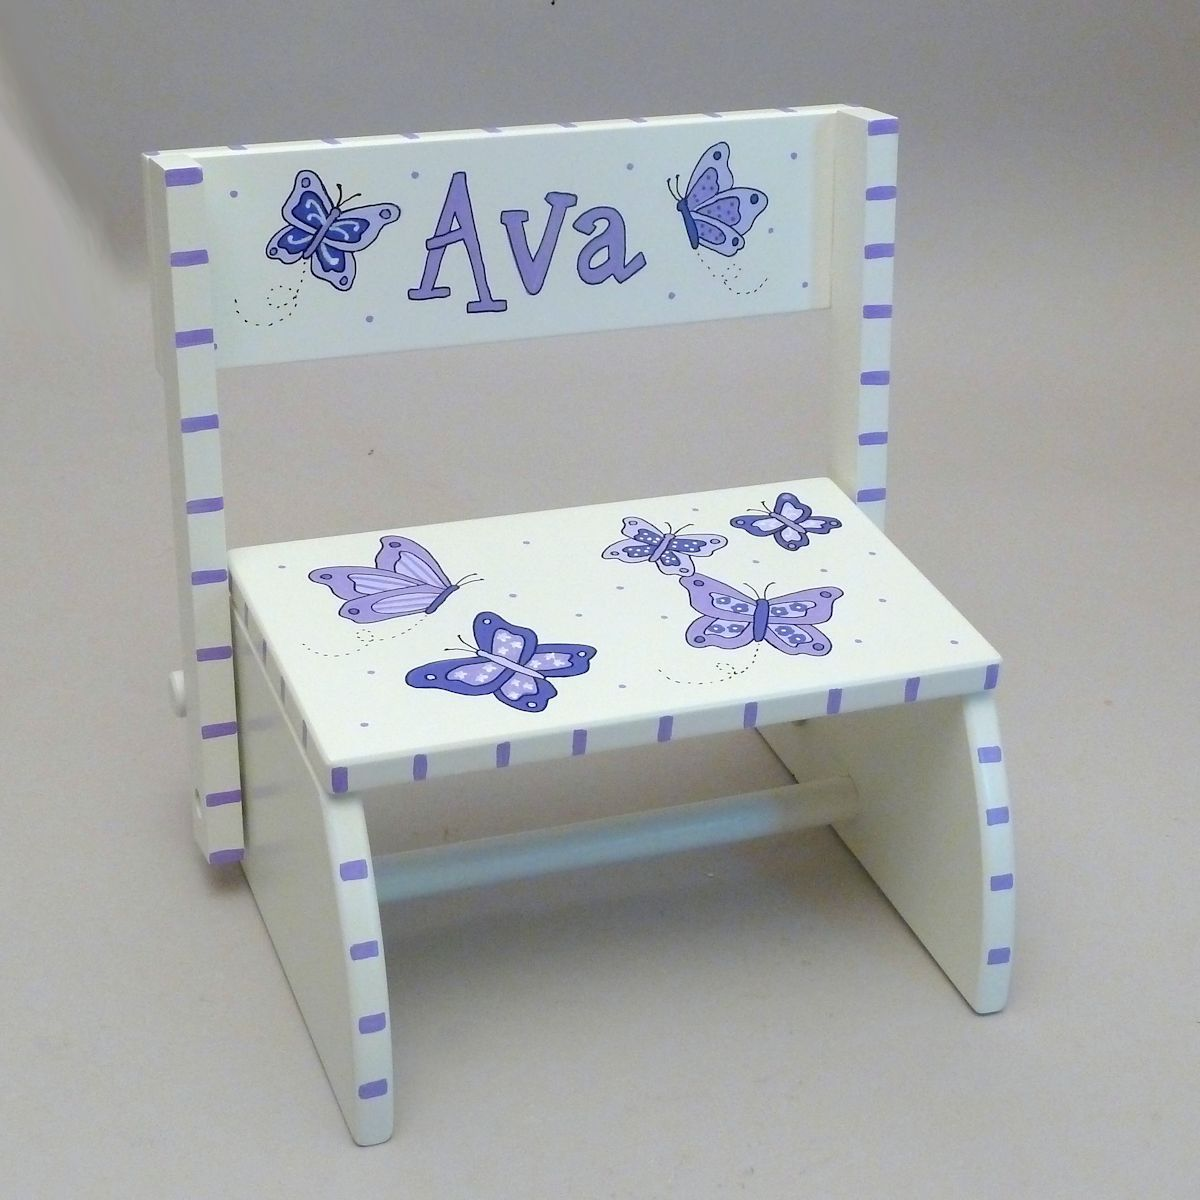 Our personalized small white step stool is our 1 baby gift at our personalized small white step stool is our 1 baby gift at neat stuff gifts negle Image collections